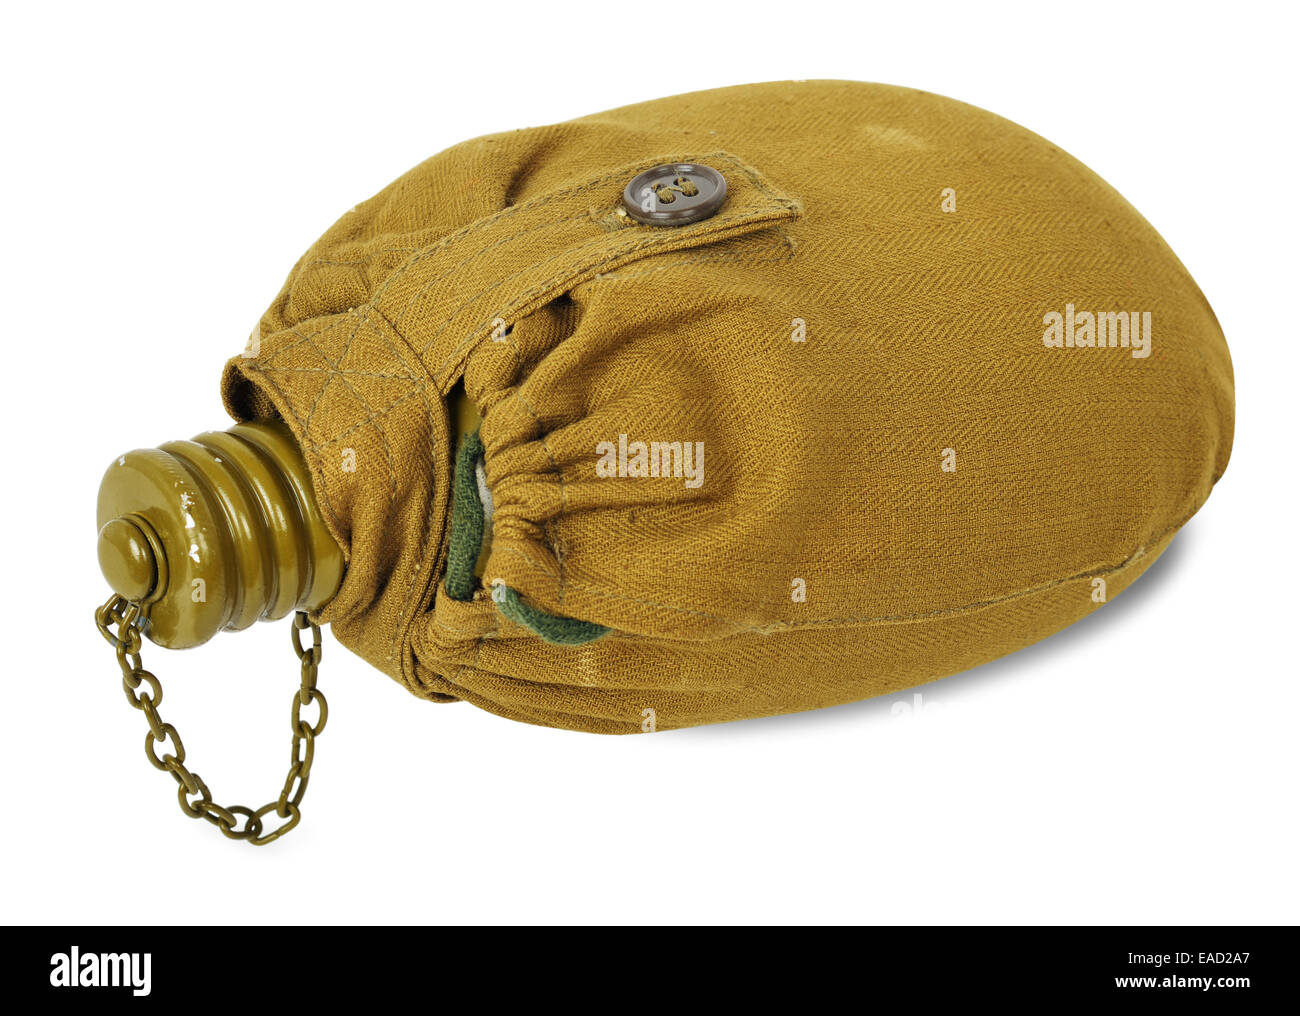 Canteen (bottle) in a fabric cover of the sheet on a white background - Stock Image